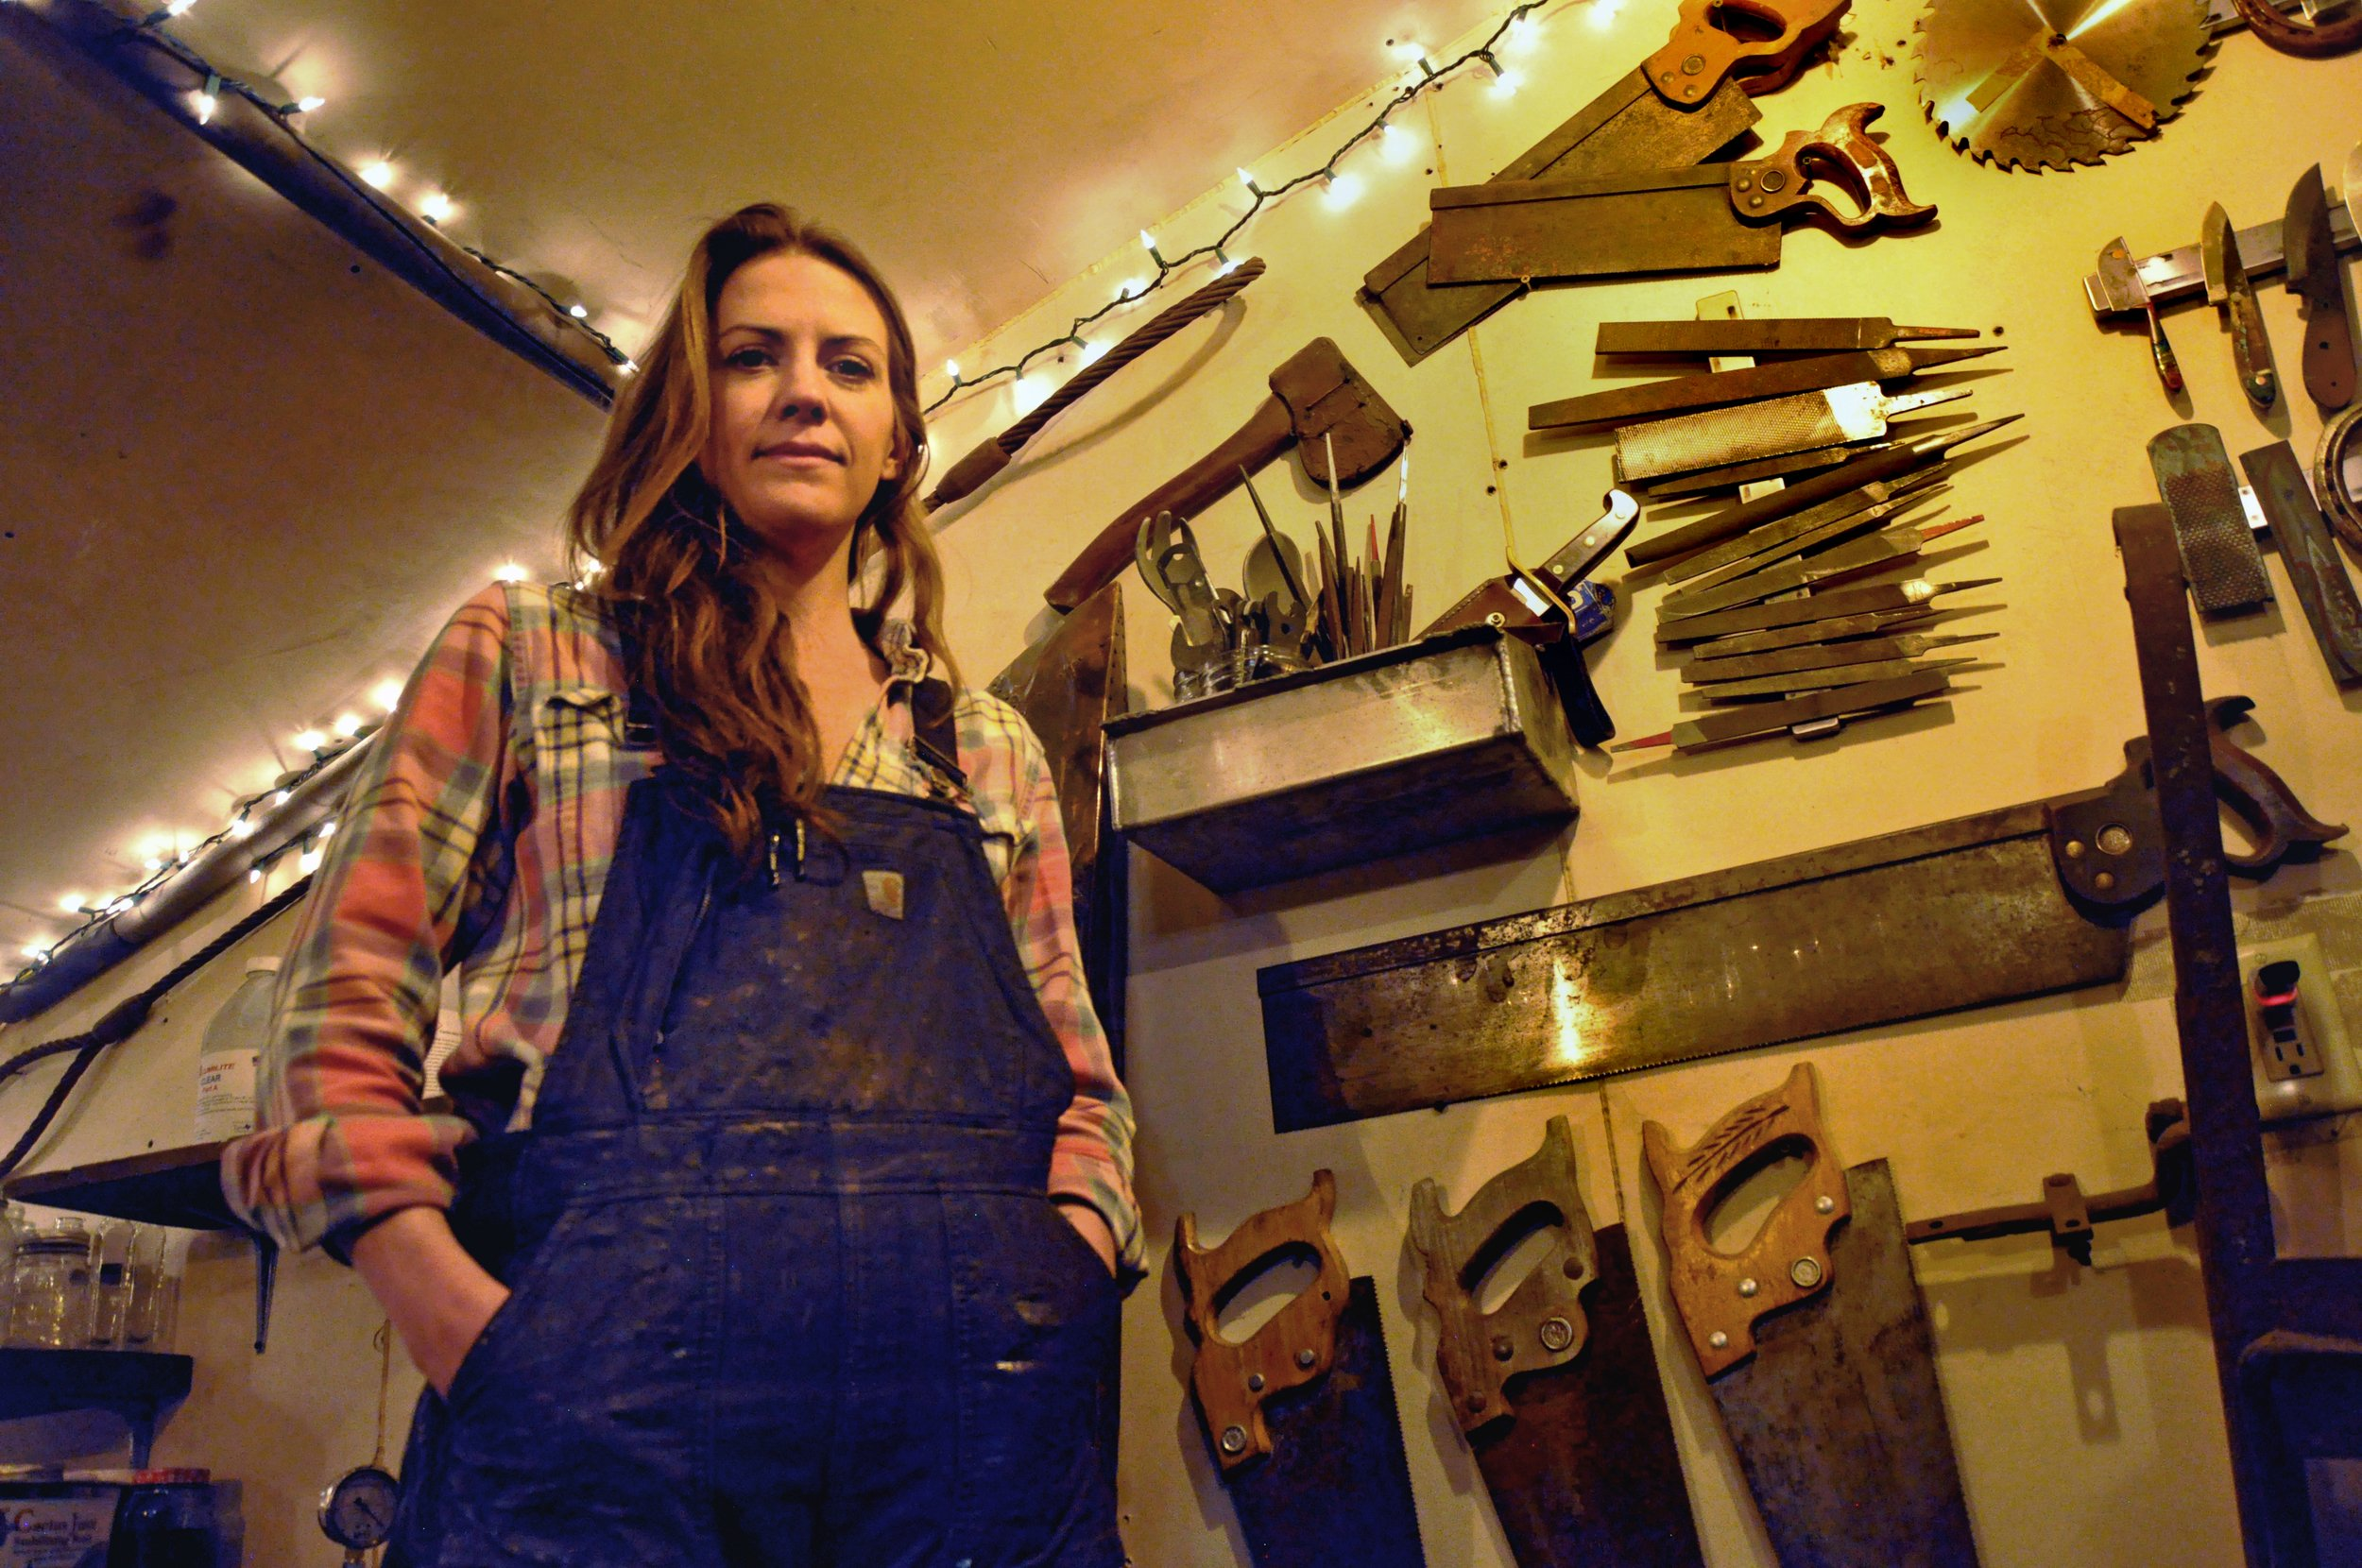 Knifemaker creates perfection from imperfection – The Sopris Sun